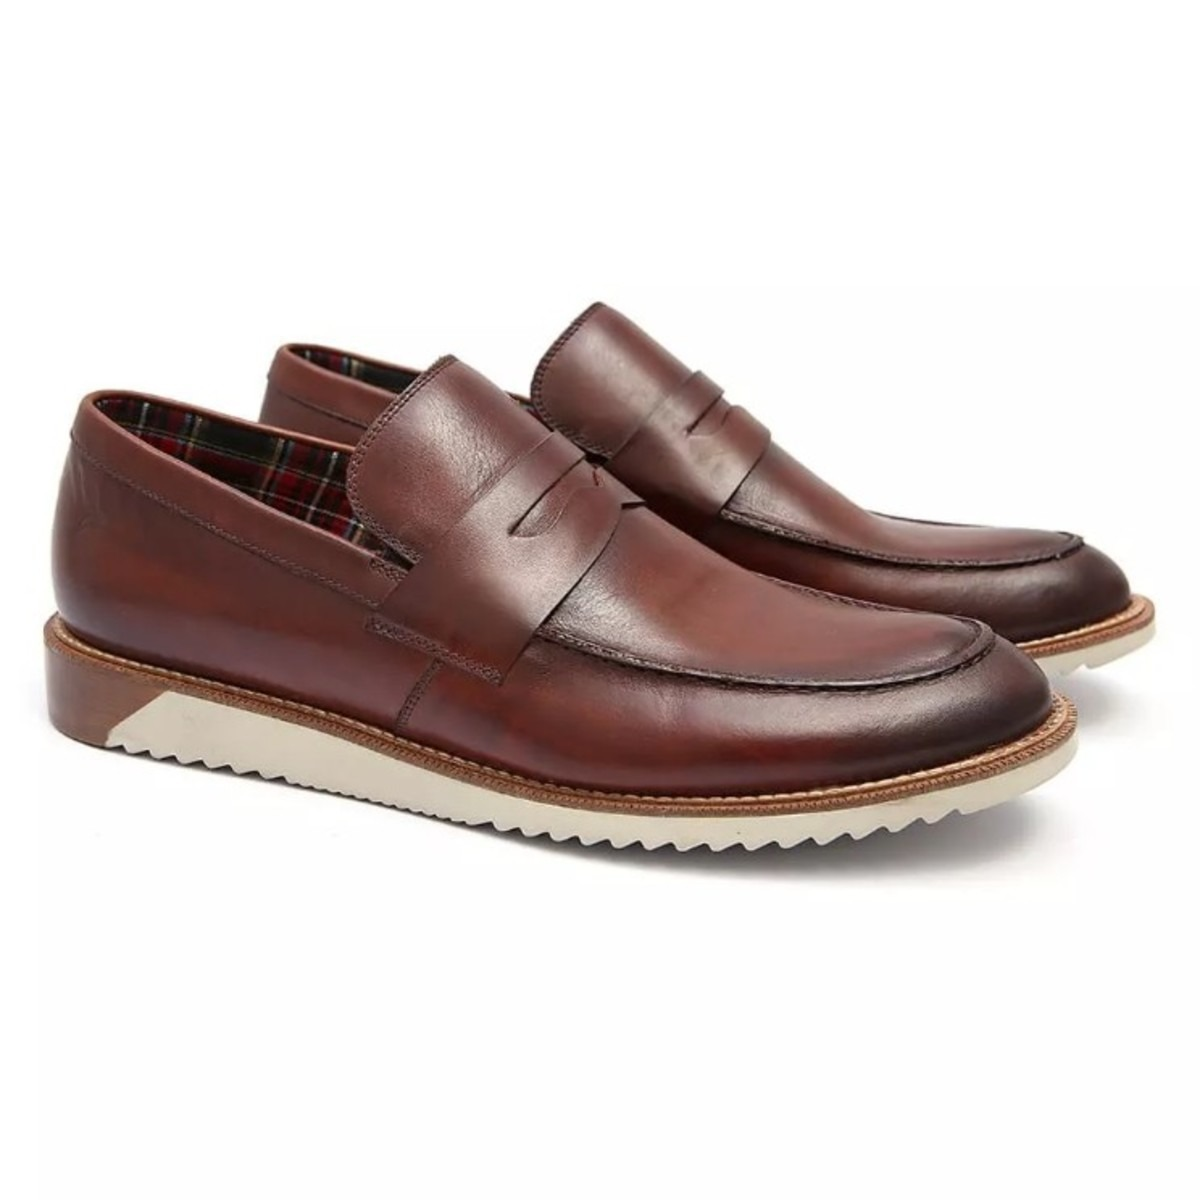 0a98b17ad3 sapato social em couro masculino penny loafer weejun whisky. Carregando zoom .